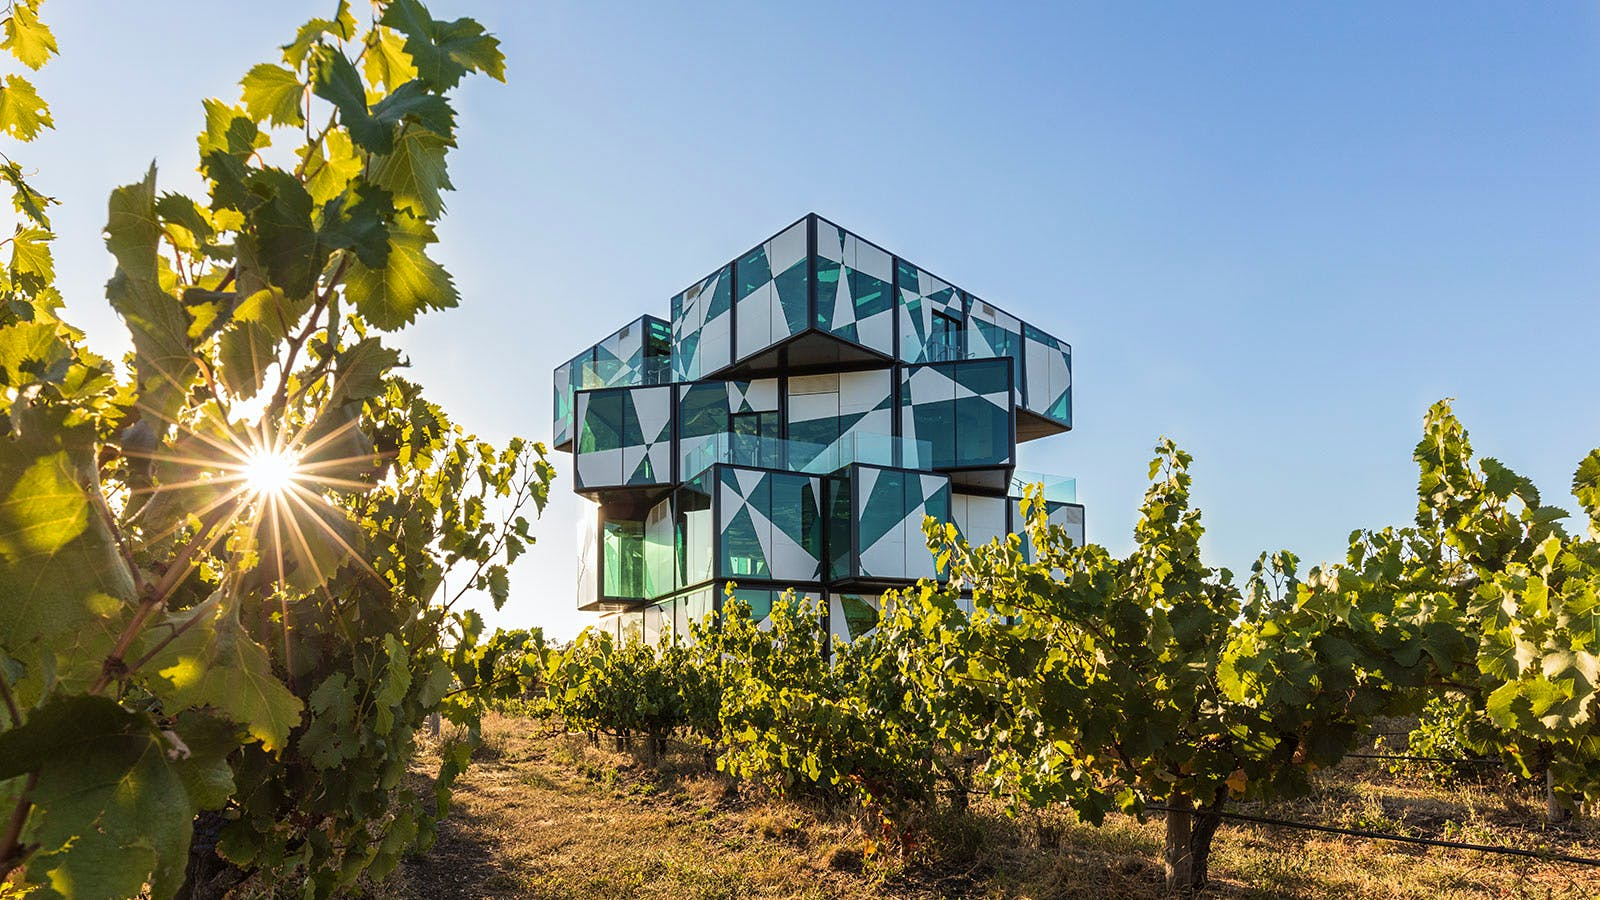 Extremely Trippy Giant Wine Rubik's Cube Arises in Australia